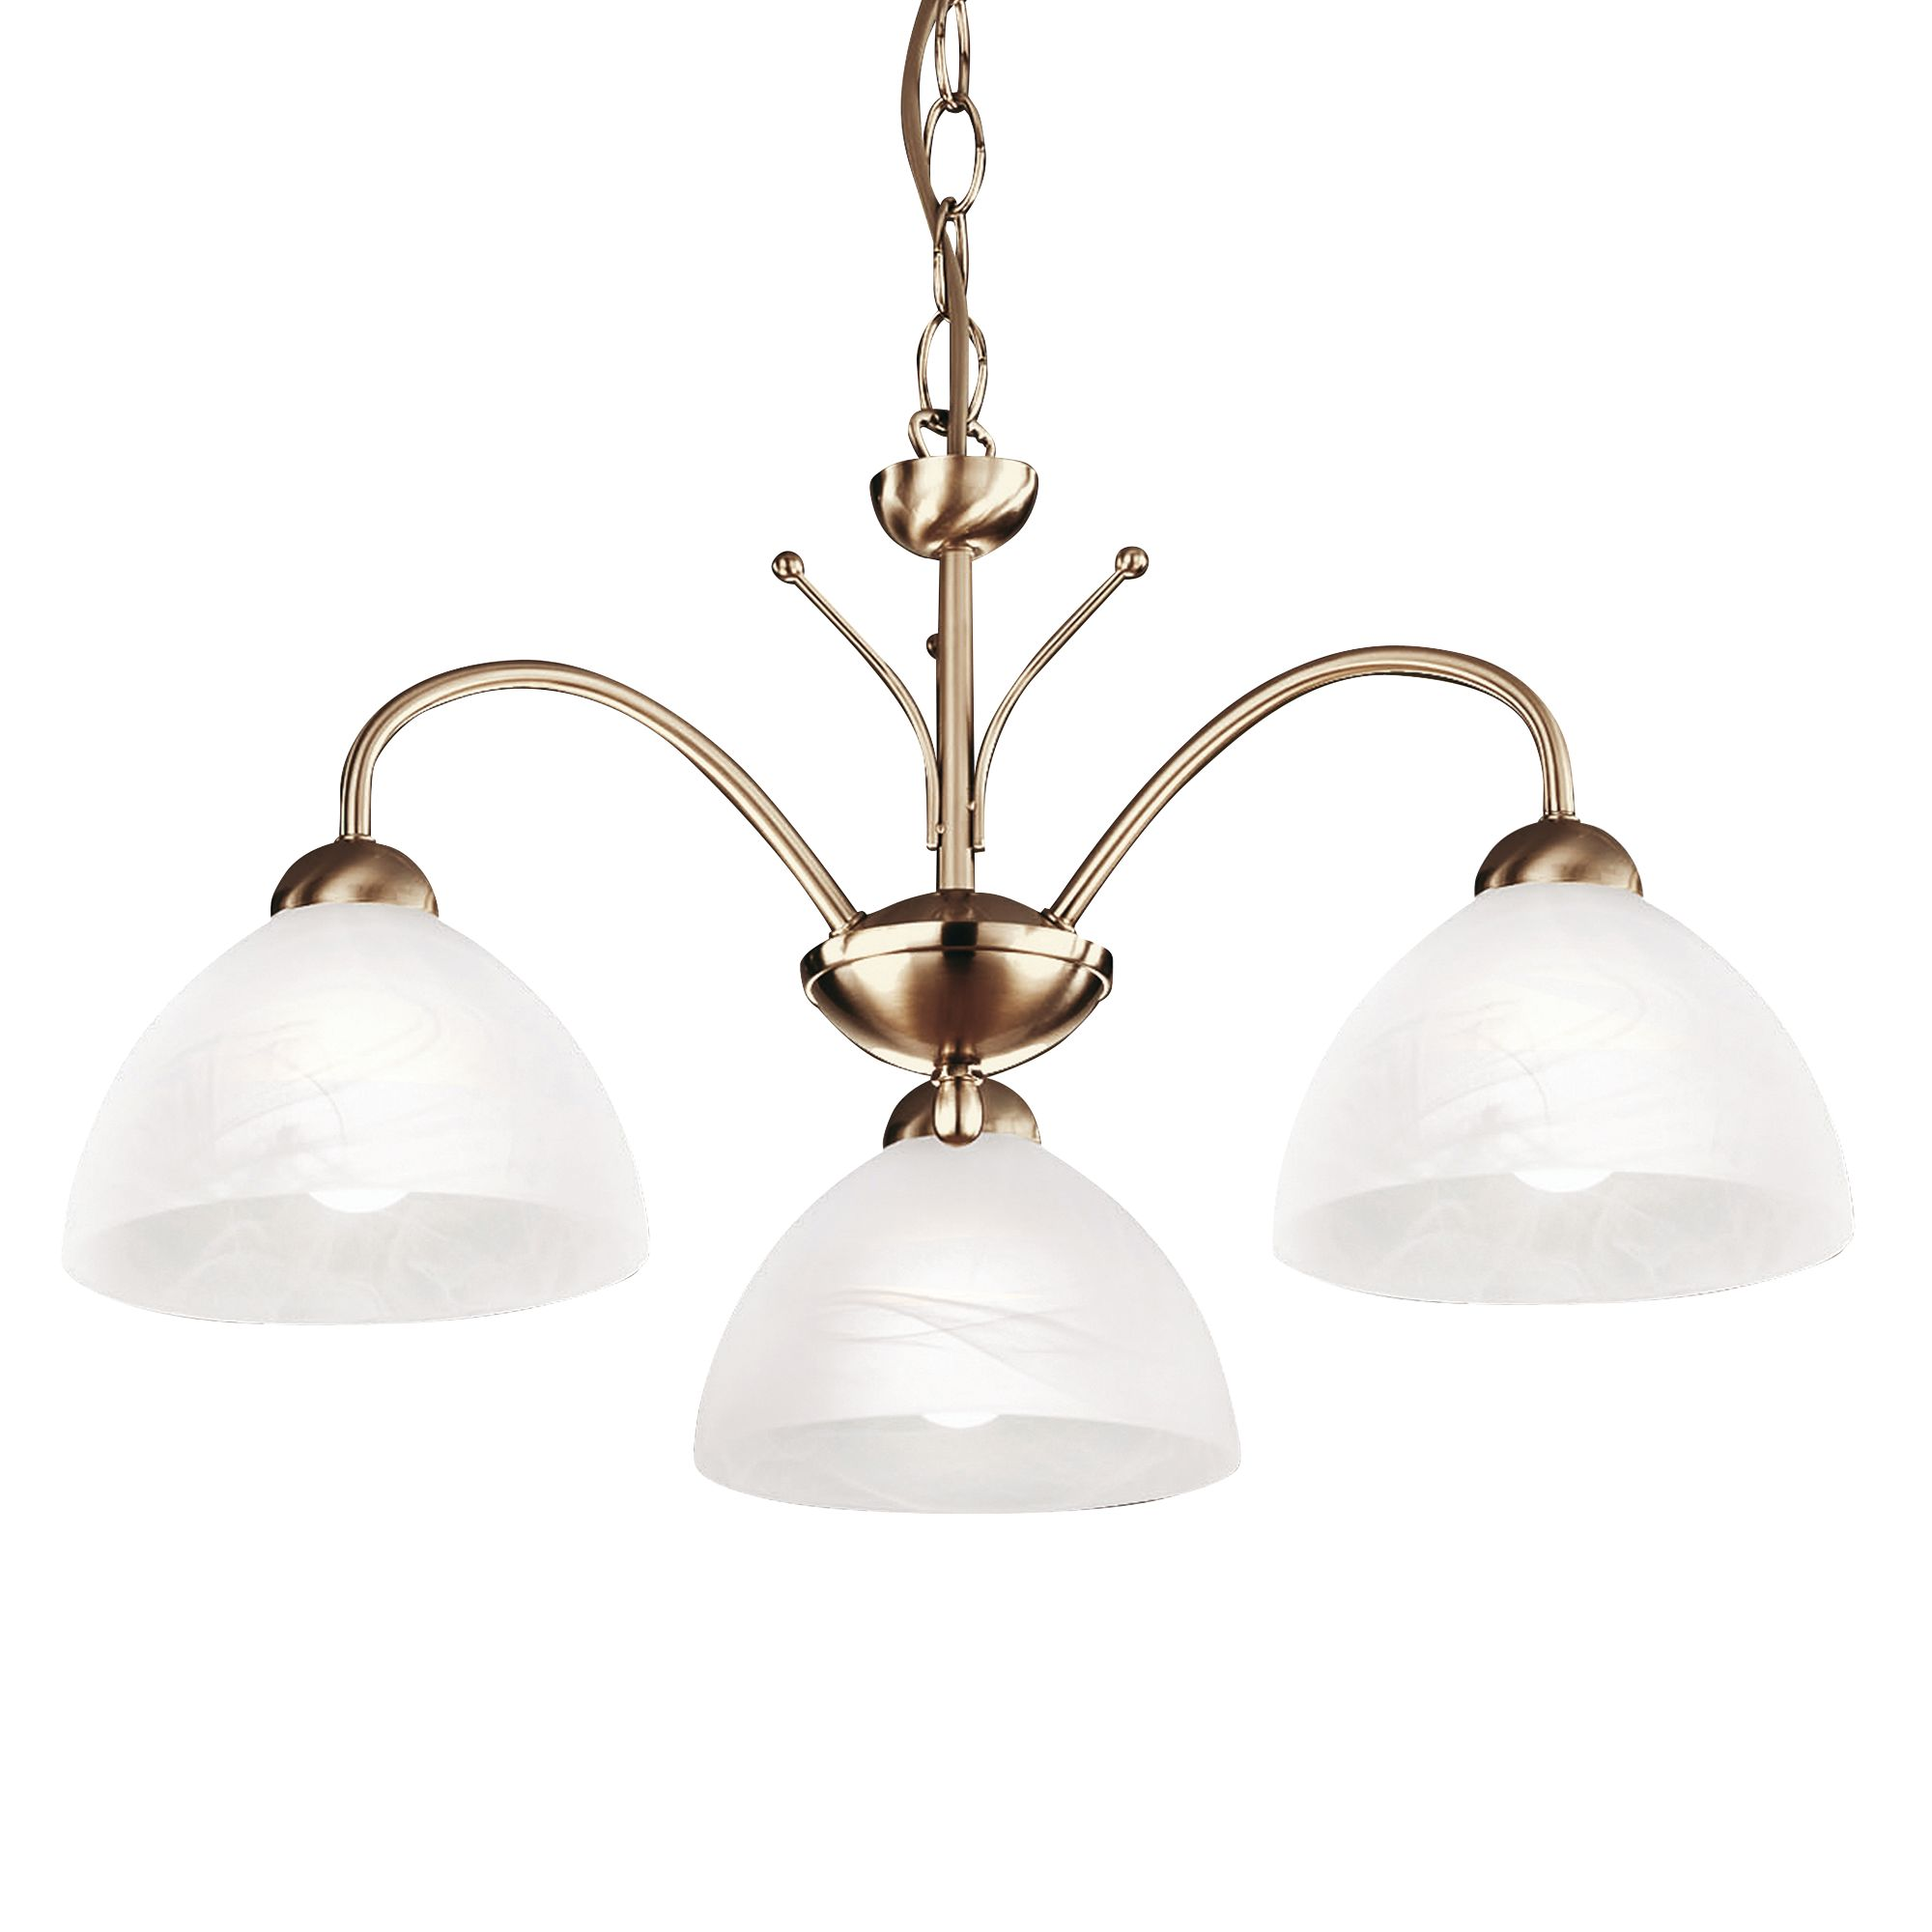 Milanese Antique Brass 3 Light Fitting With Alabaster Glass